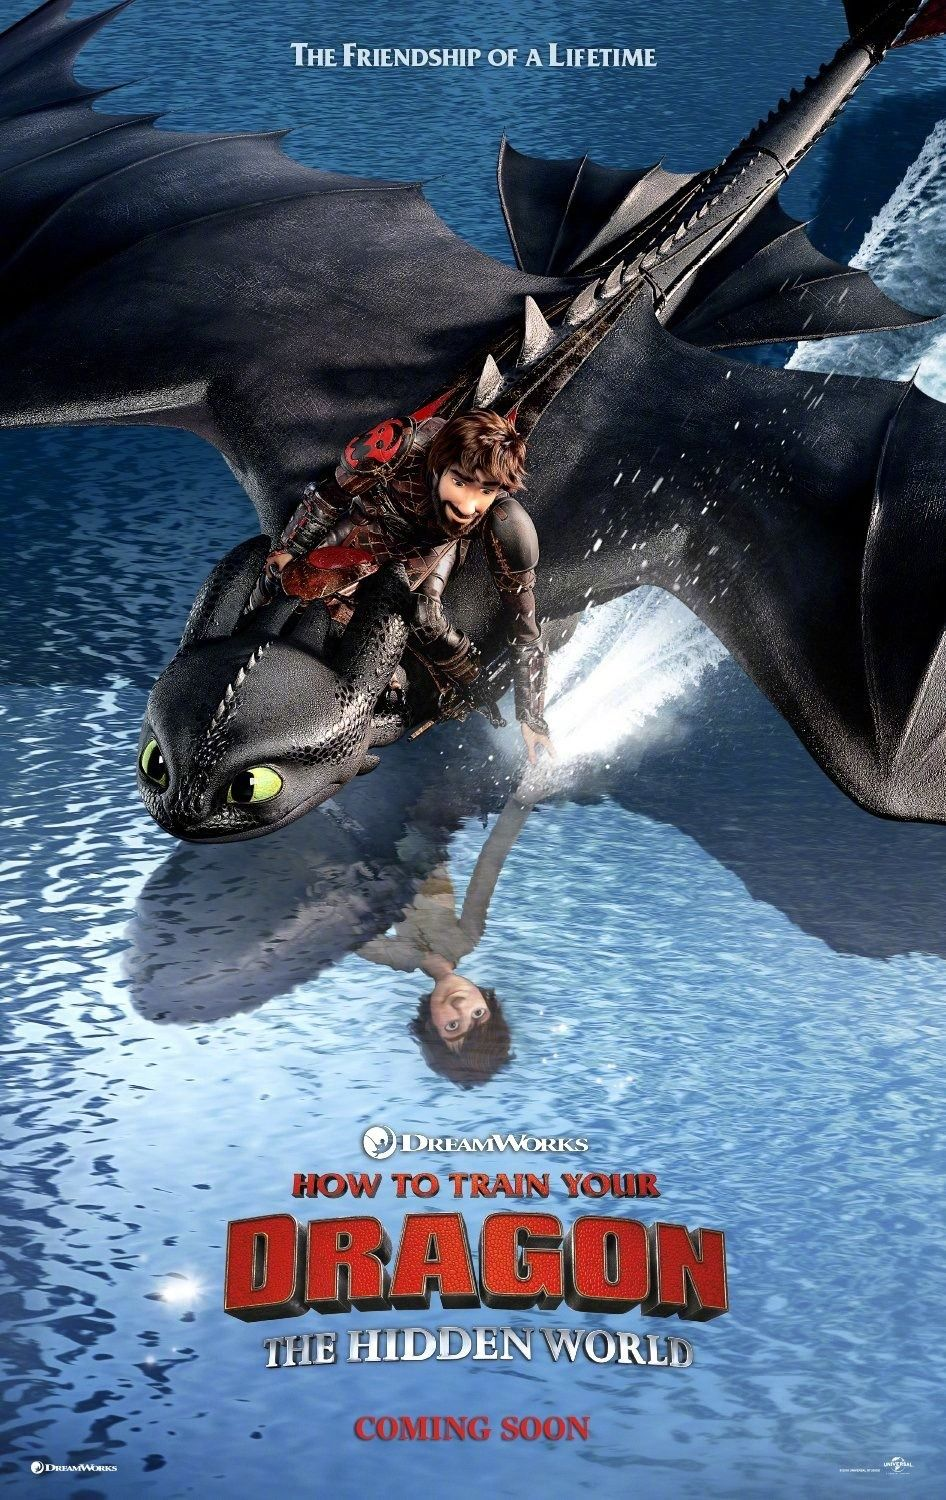 How to Train Your Dragon 3 Review: A Fond Farewell to the